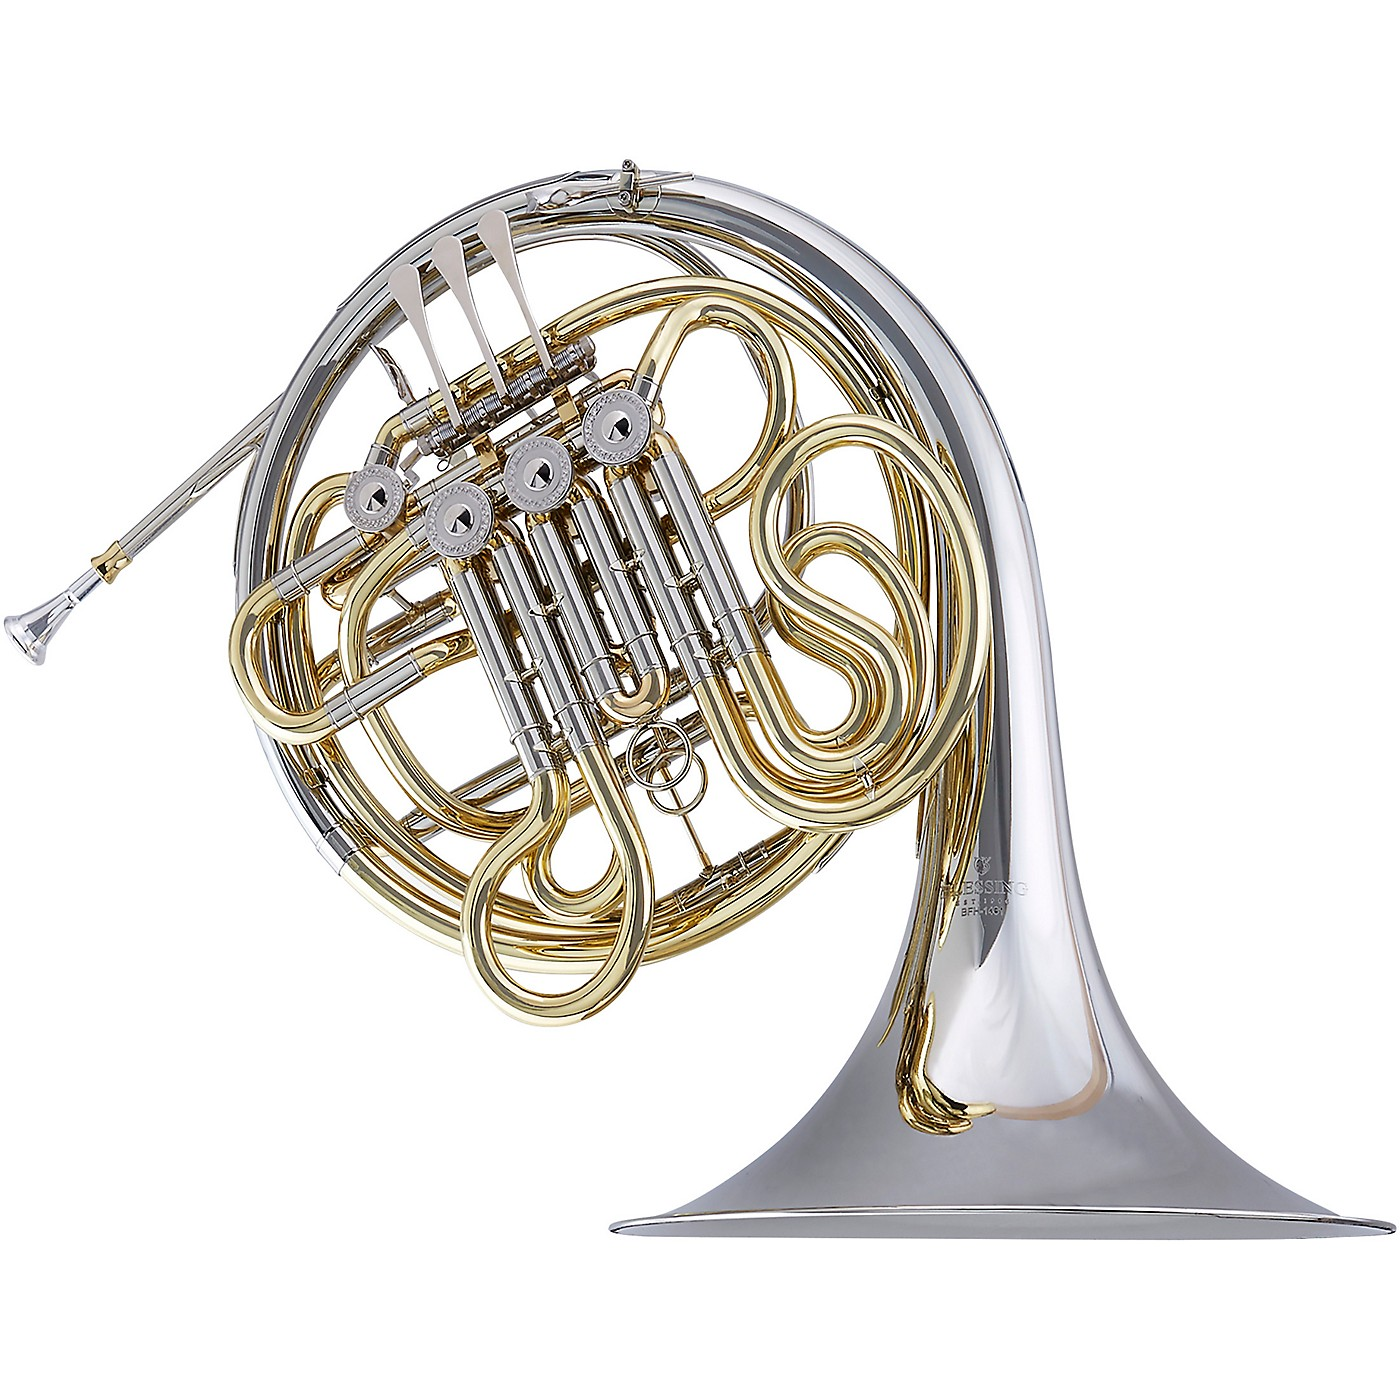 Blessing BFH1461ND Performance Series F/ Bb Double French Horn with Detchable Bell thumbnail